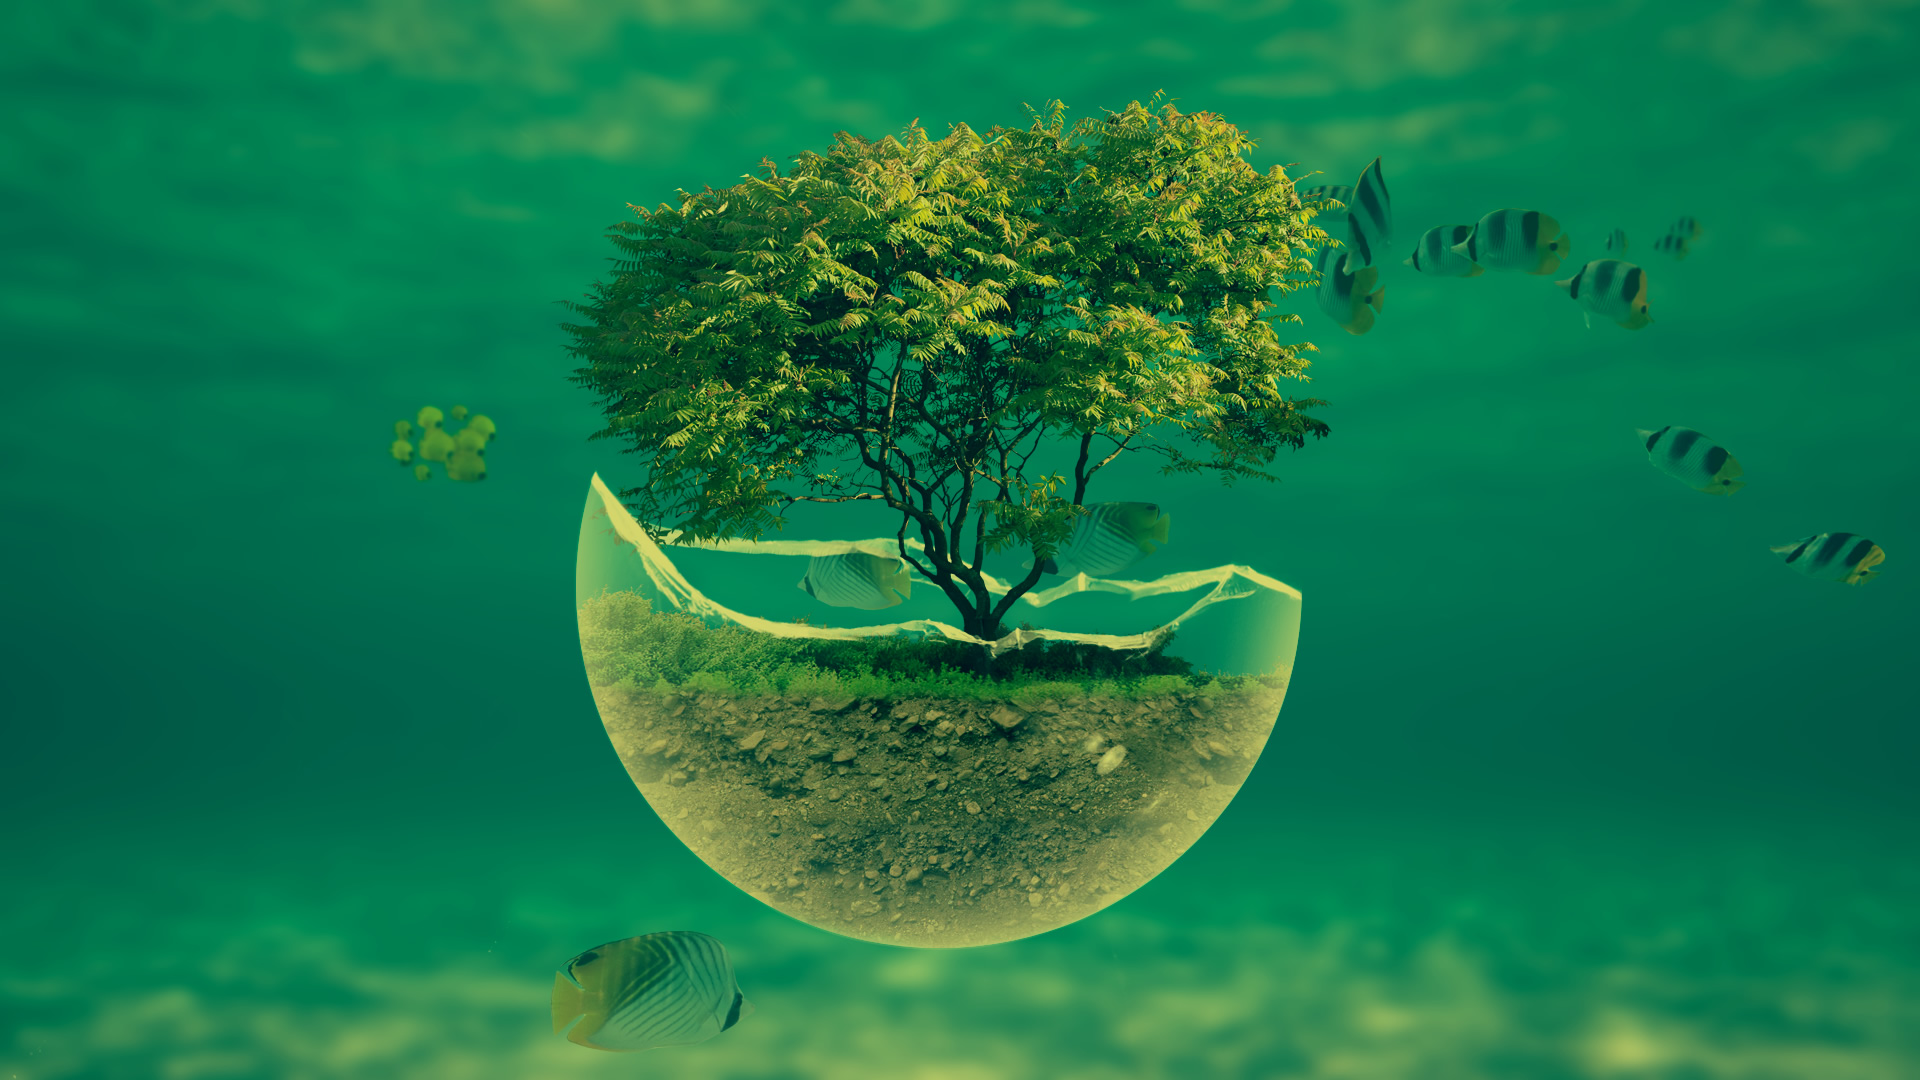 1920x1080 Tree Underwater Fishes Desktop PC And Mac Wallpaper